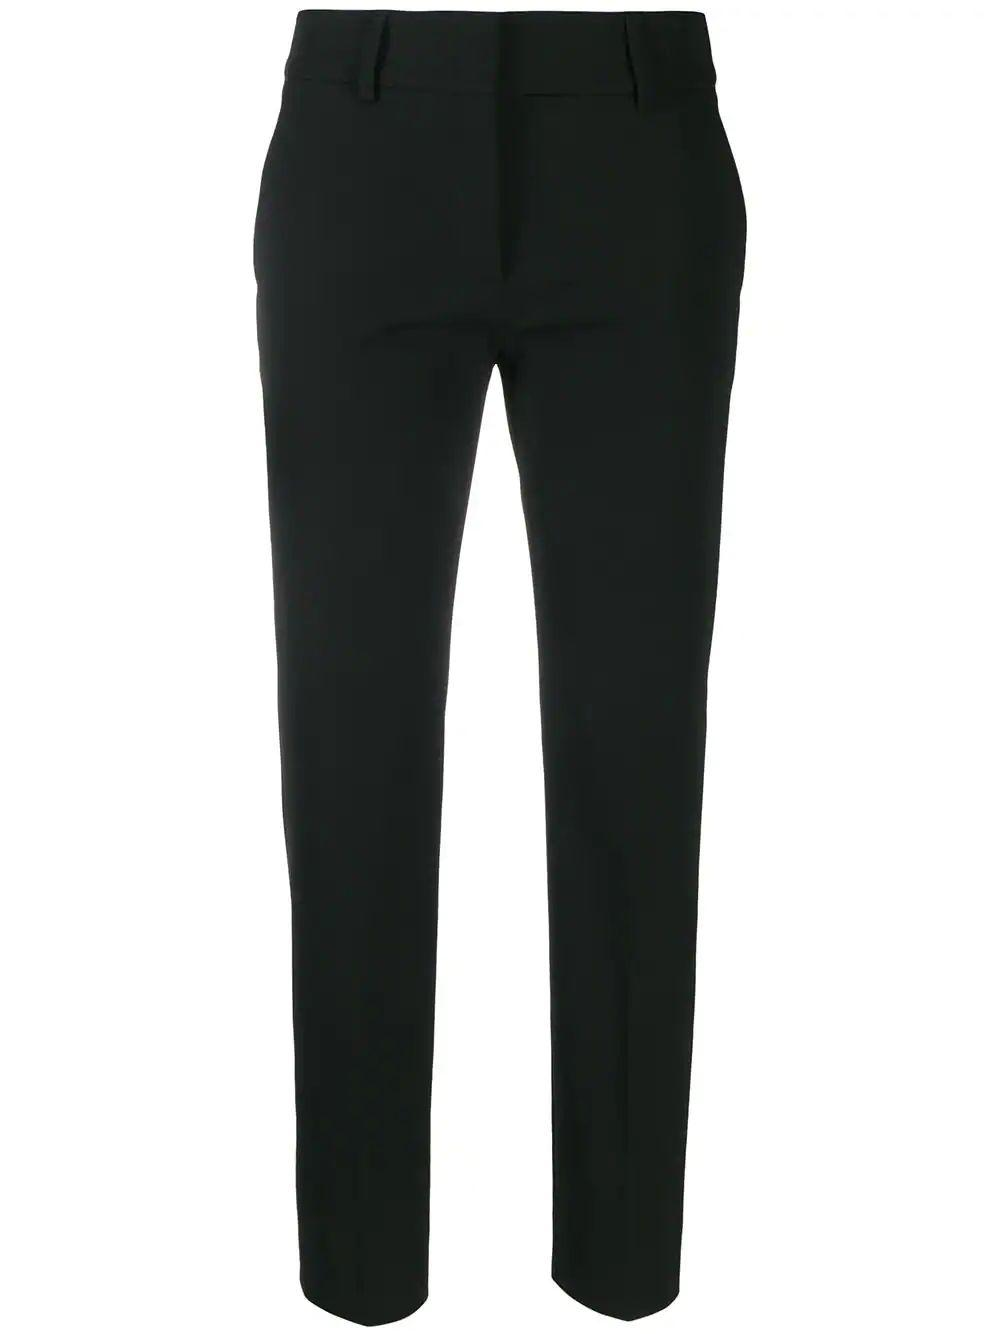 New 4-Way Stretch Front Zip Techno Pant